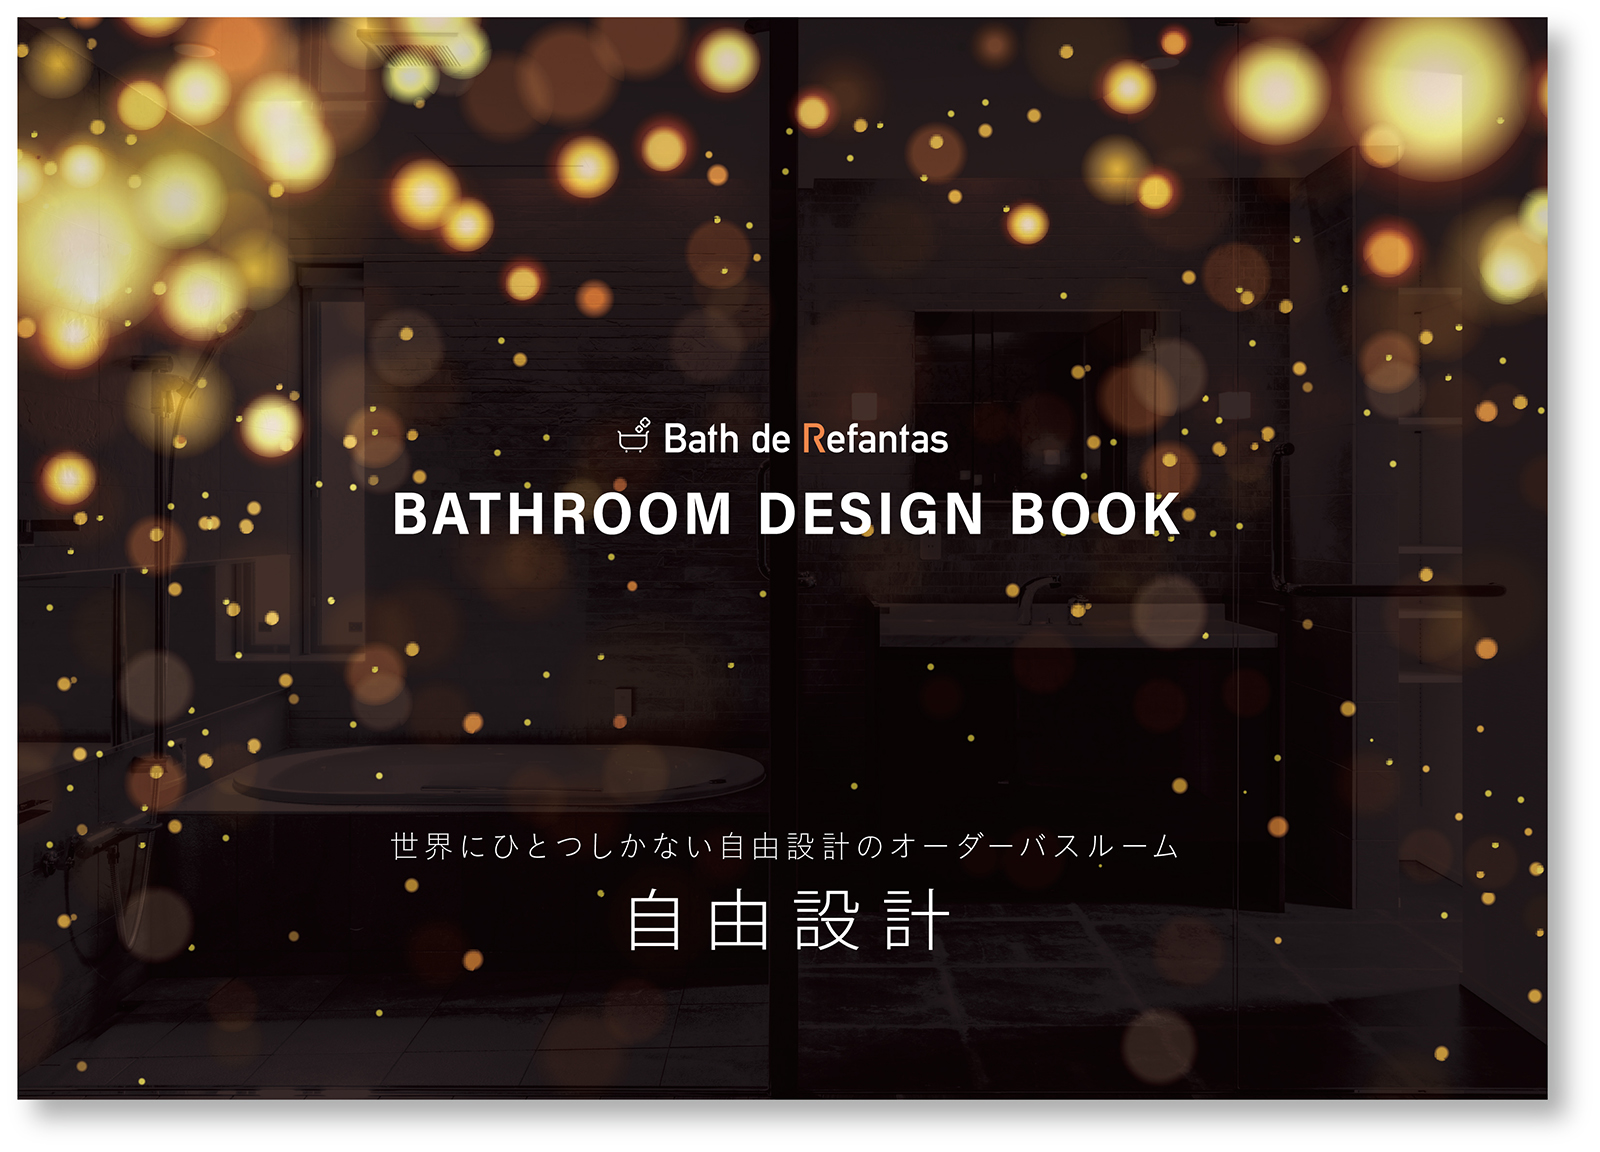 BATHROOM DESIGN BOOK 2020